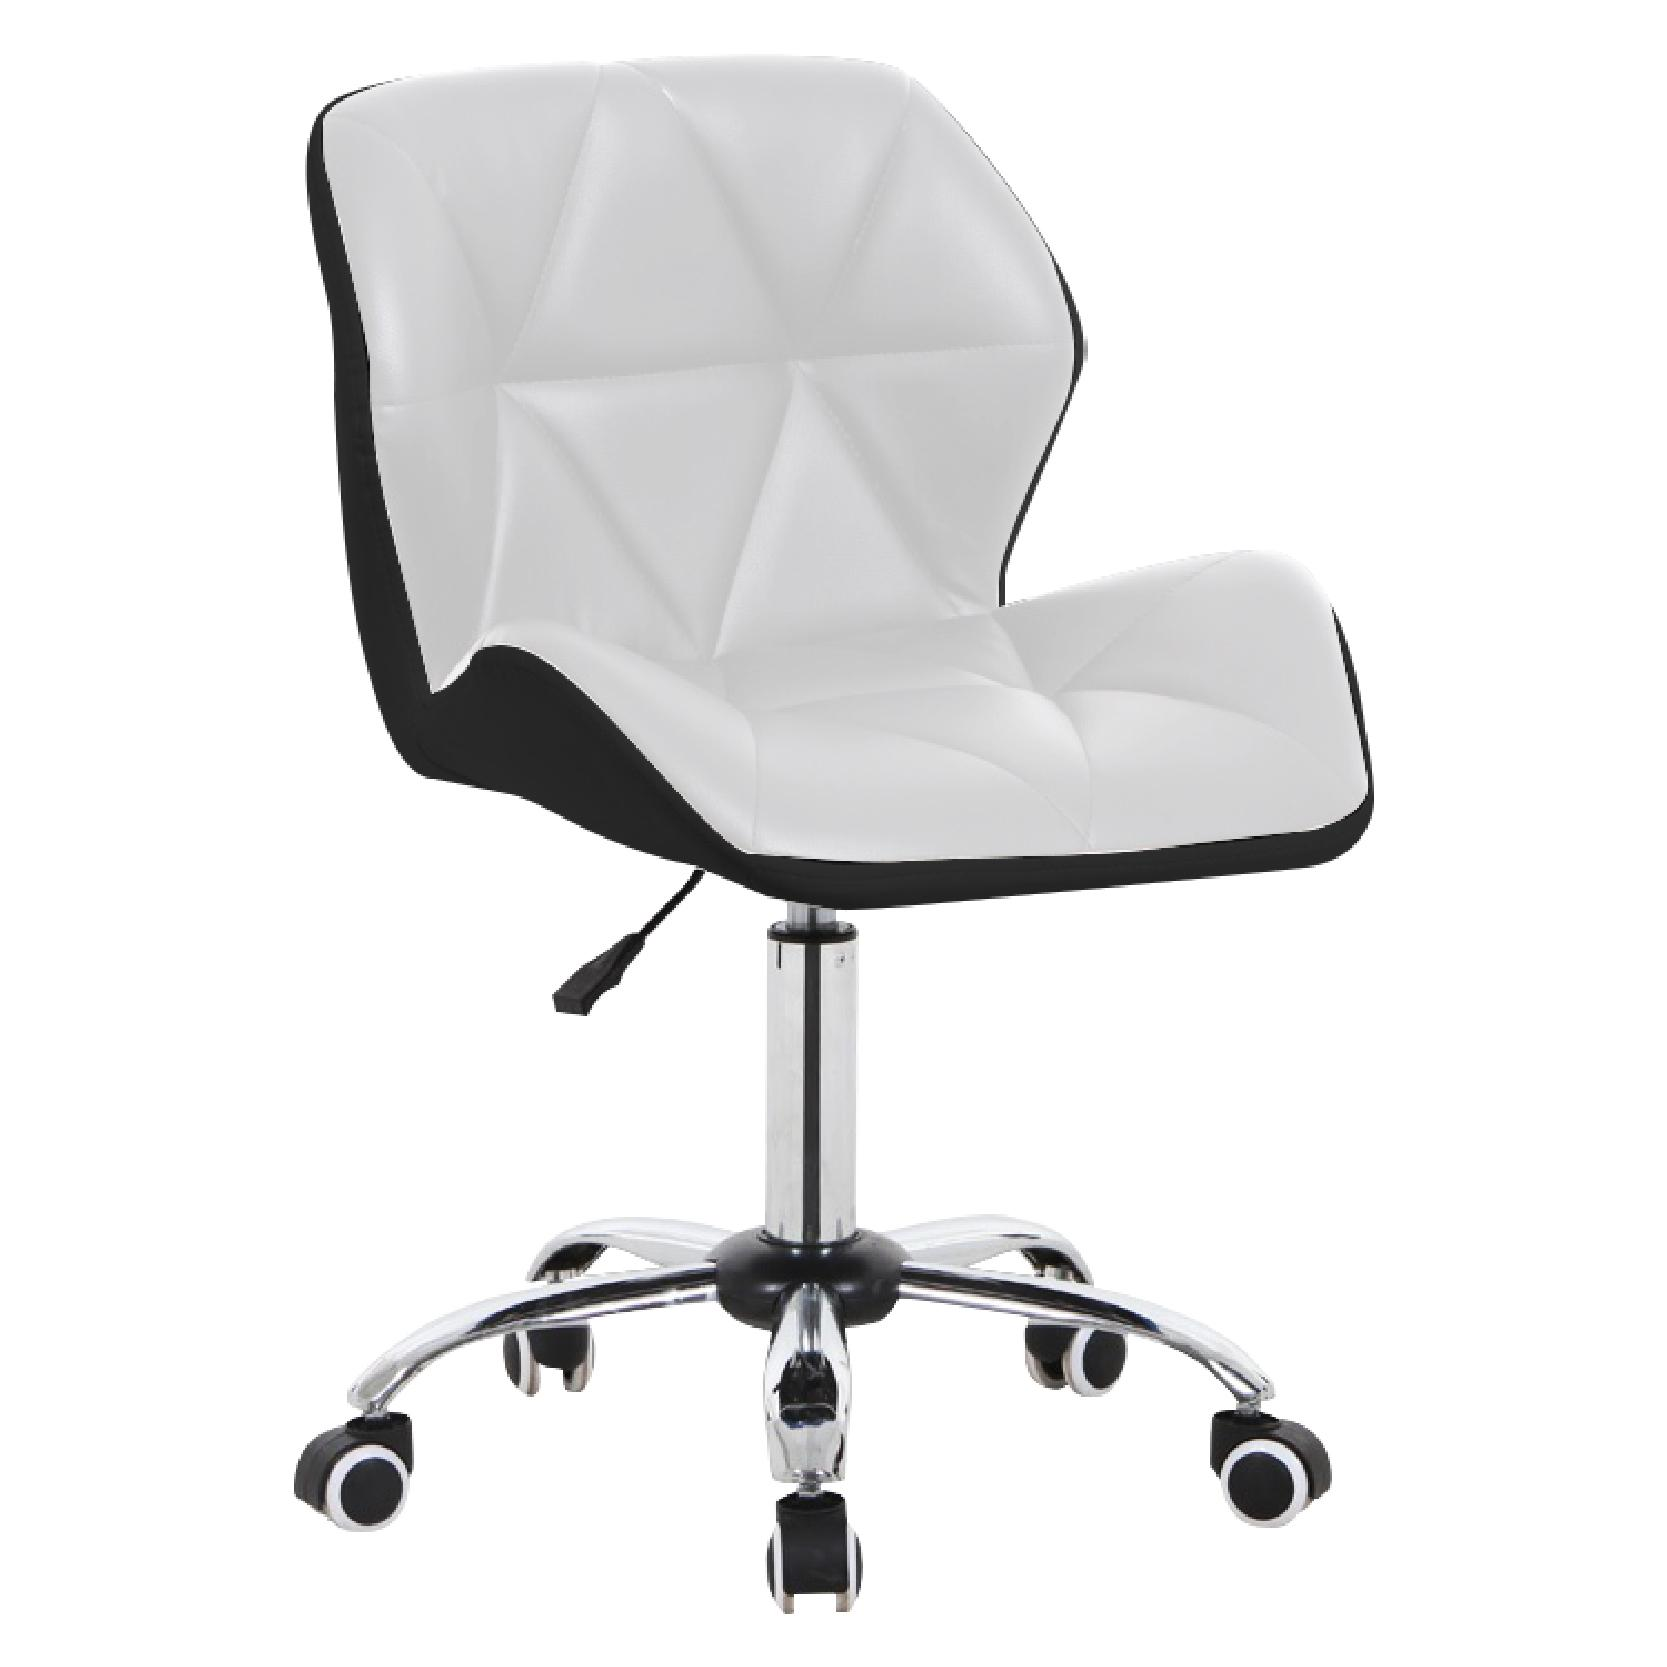 JIJI Reese Office Chair (Free Installation) - Office chair/Study chair/Gaming chair/Ergonomic/ Free 6 Months Warranty (SG)